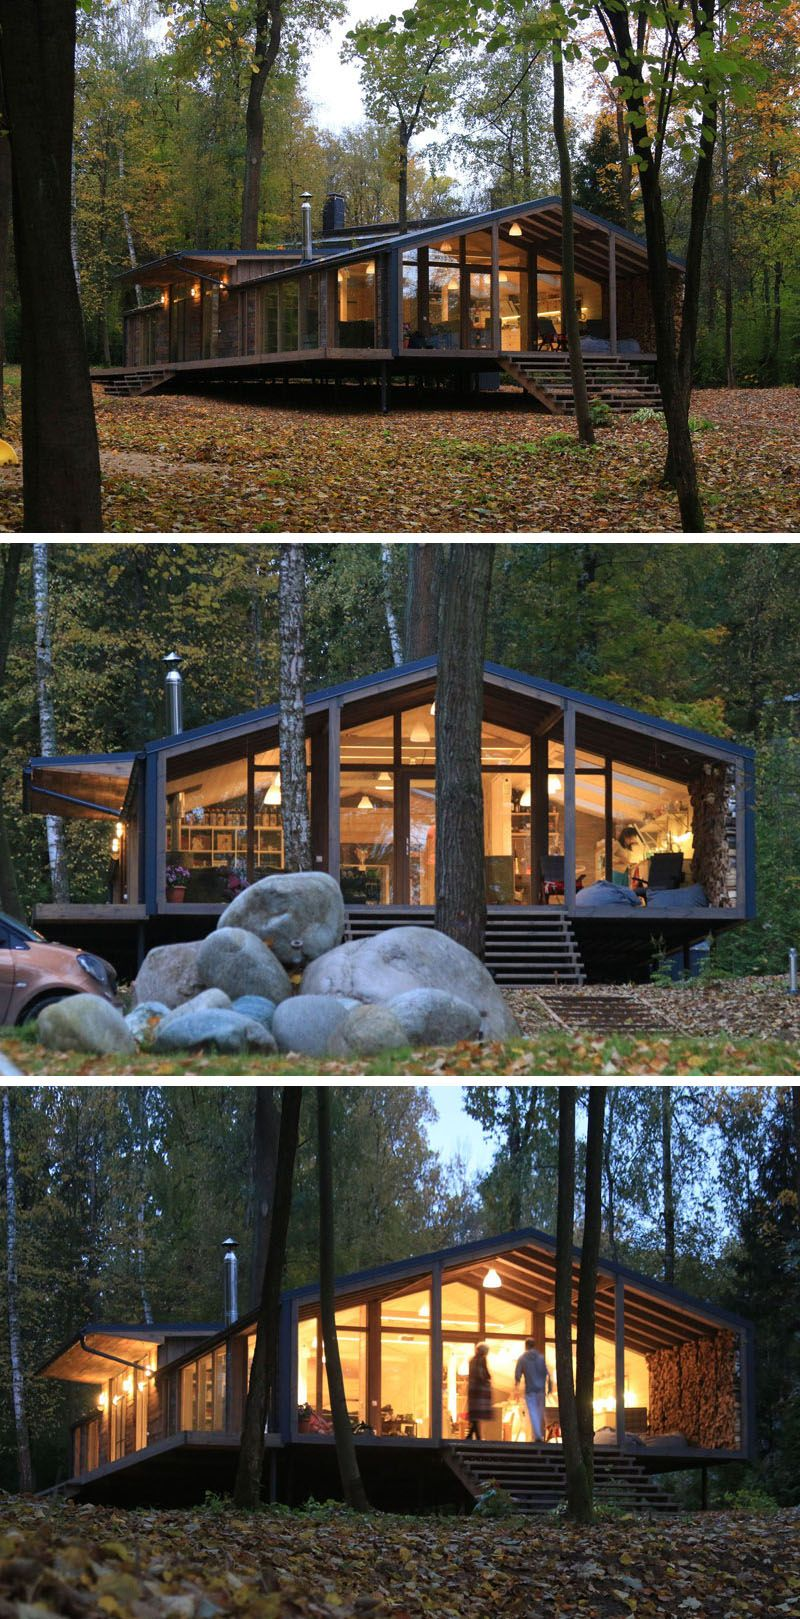 This Rustic Modern House In The Forest Was Designed For A Family In Russia